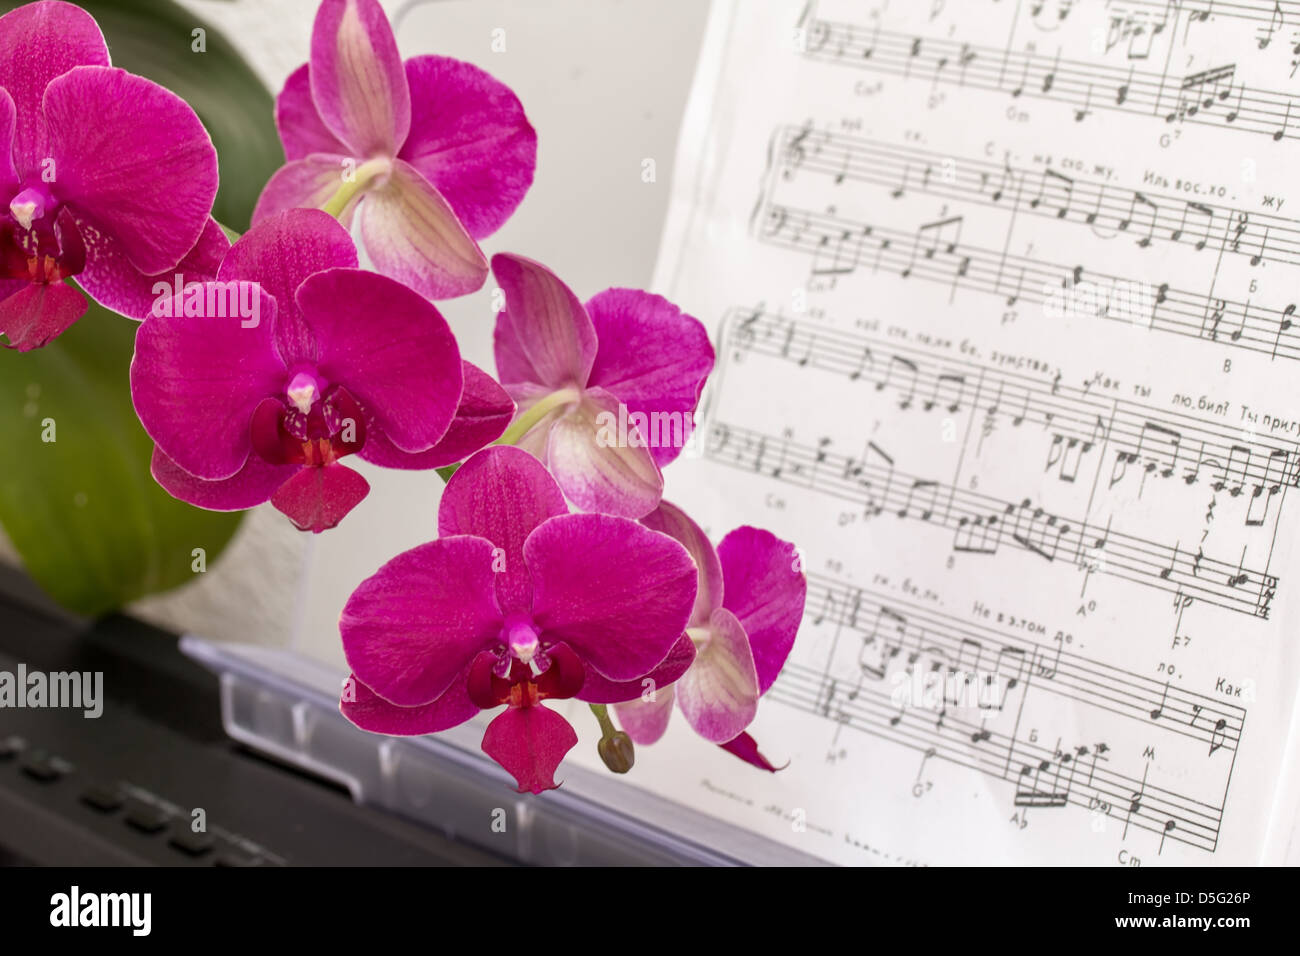 Pink orchid flower on a synthesizer keyboard with notes - Stock Image